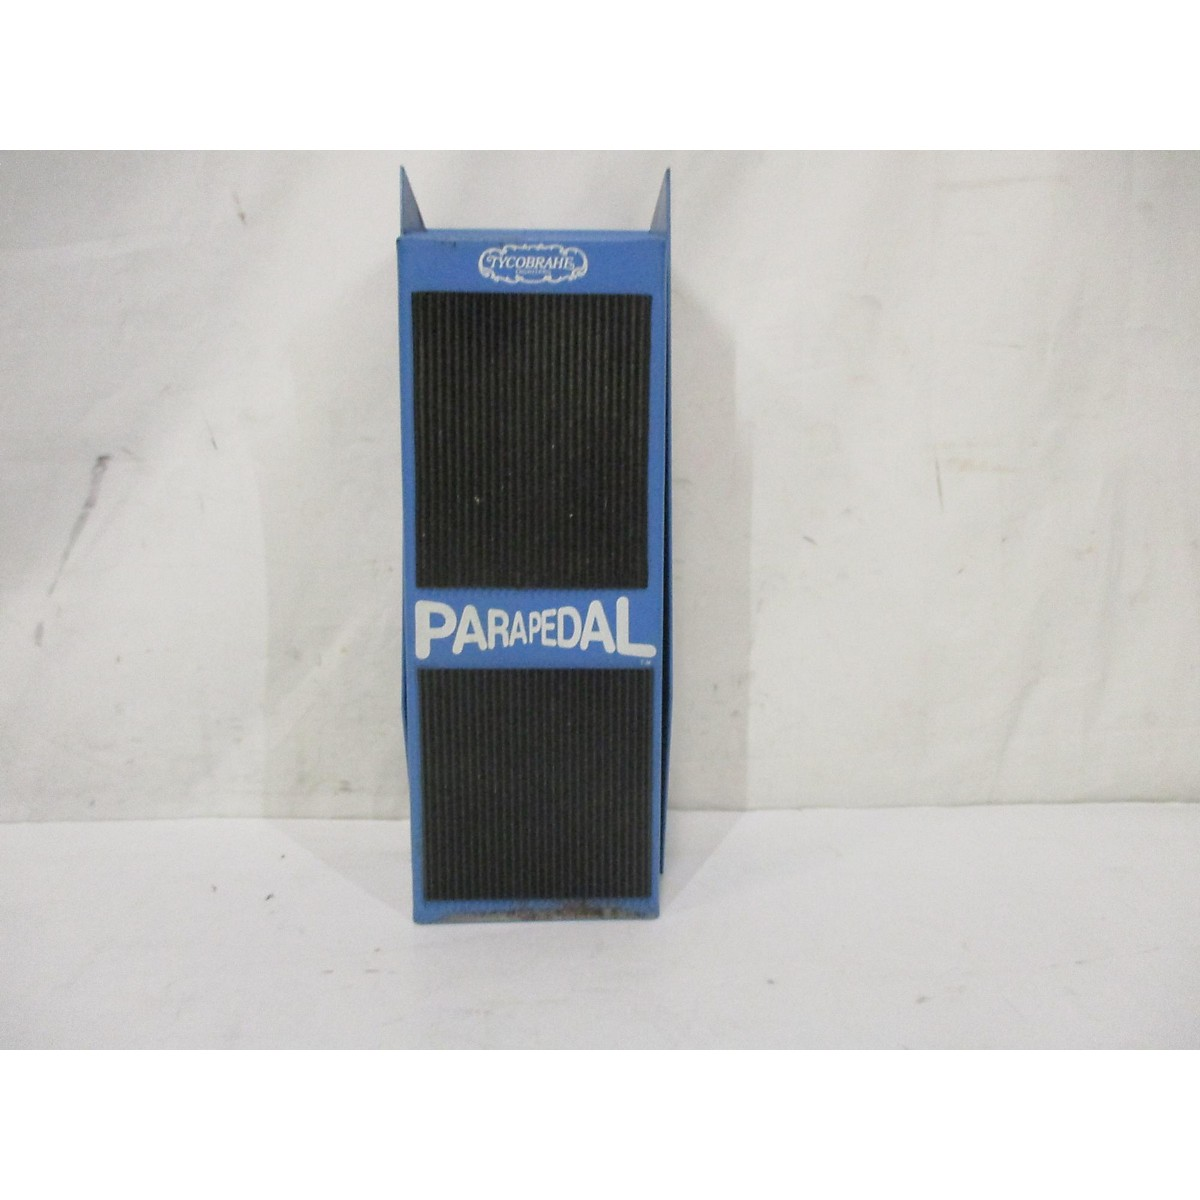 In Store Vintage Vintage 1970s Tychobrahe Parapedal Effect Pedal